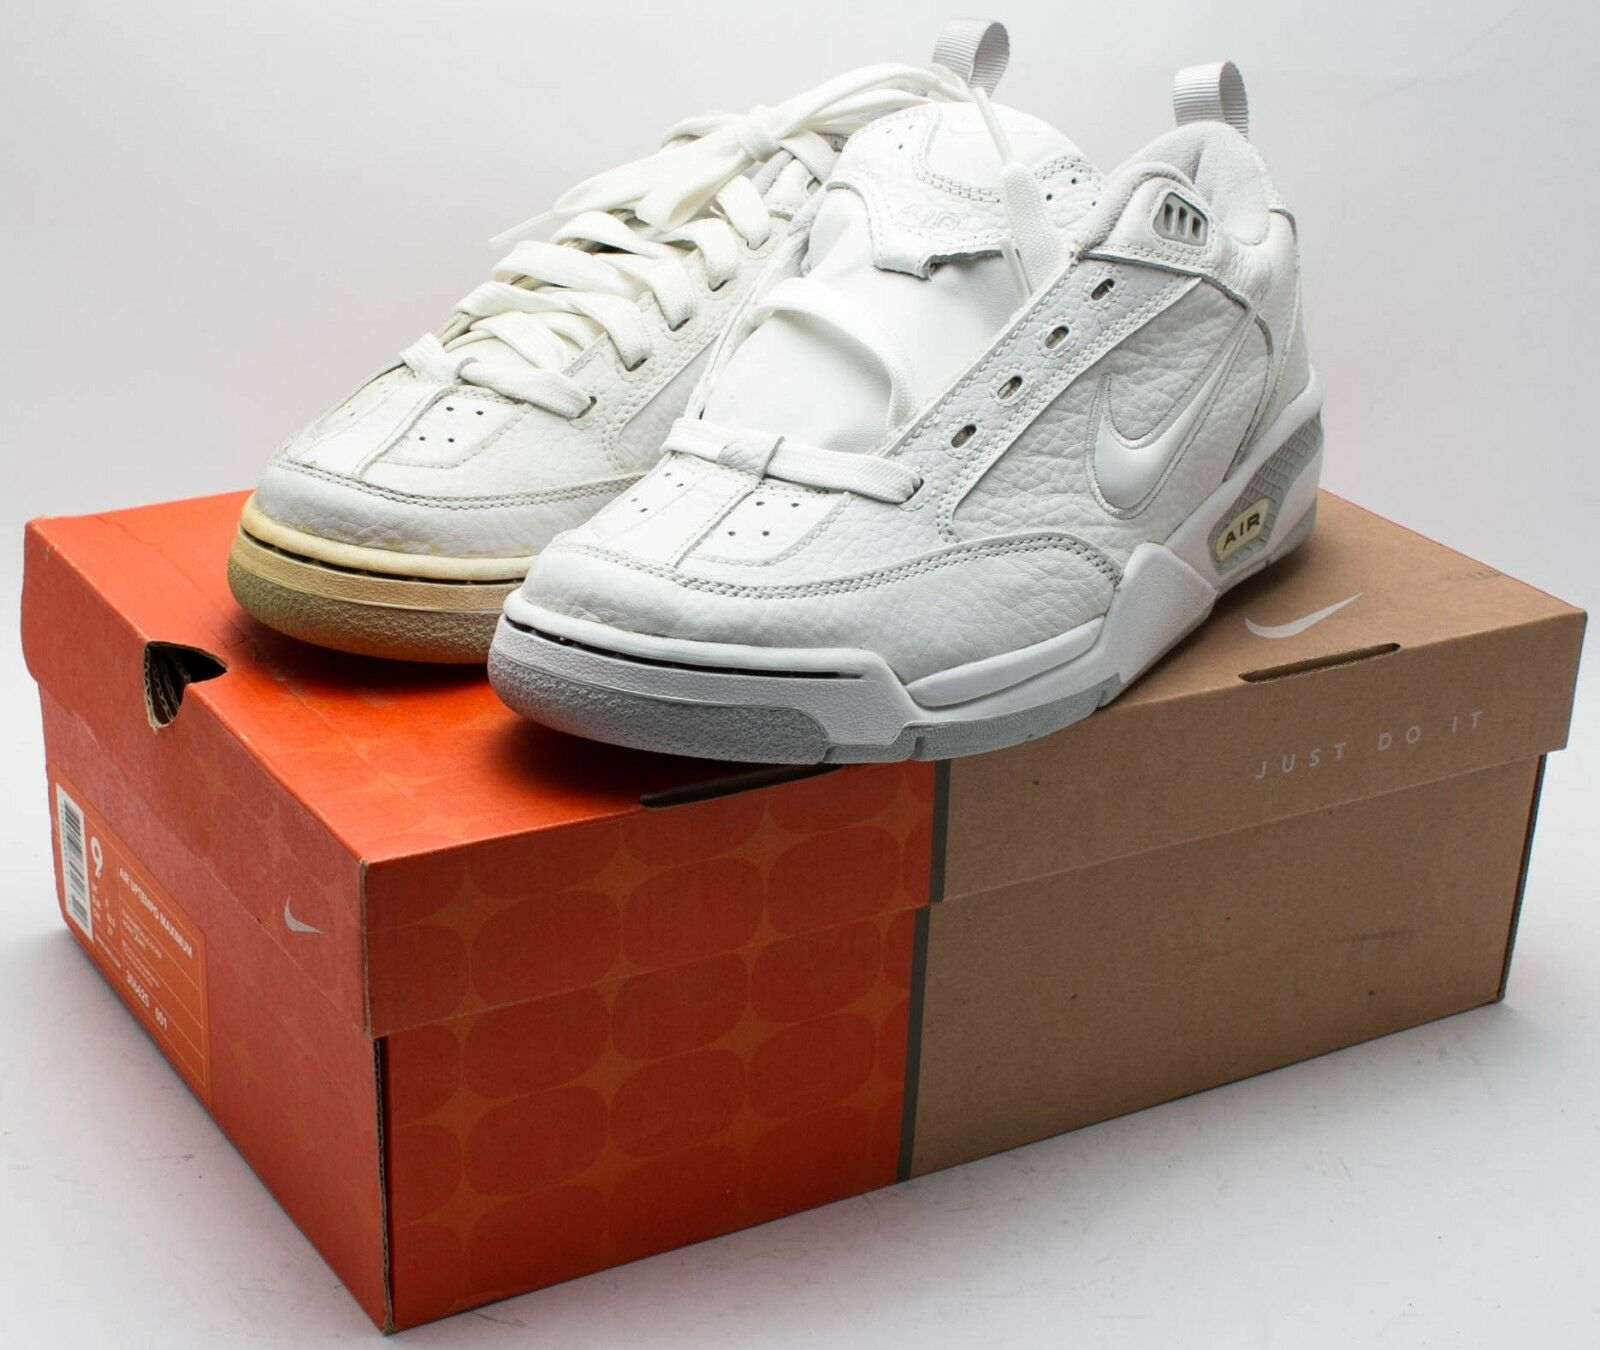 Nike homme Vintage 2018 chaussures 7.5  930138-111 blanc/Gris sz. 7.5 chaussures e211e6